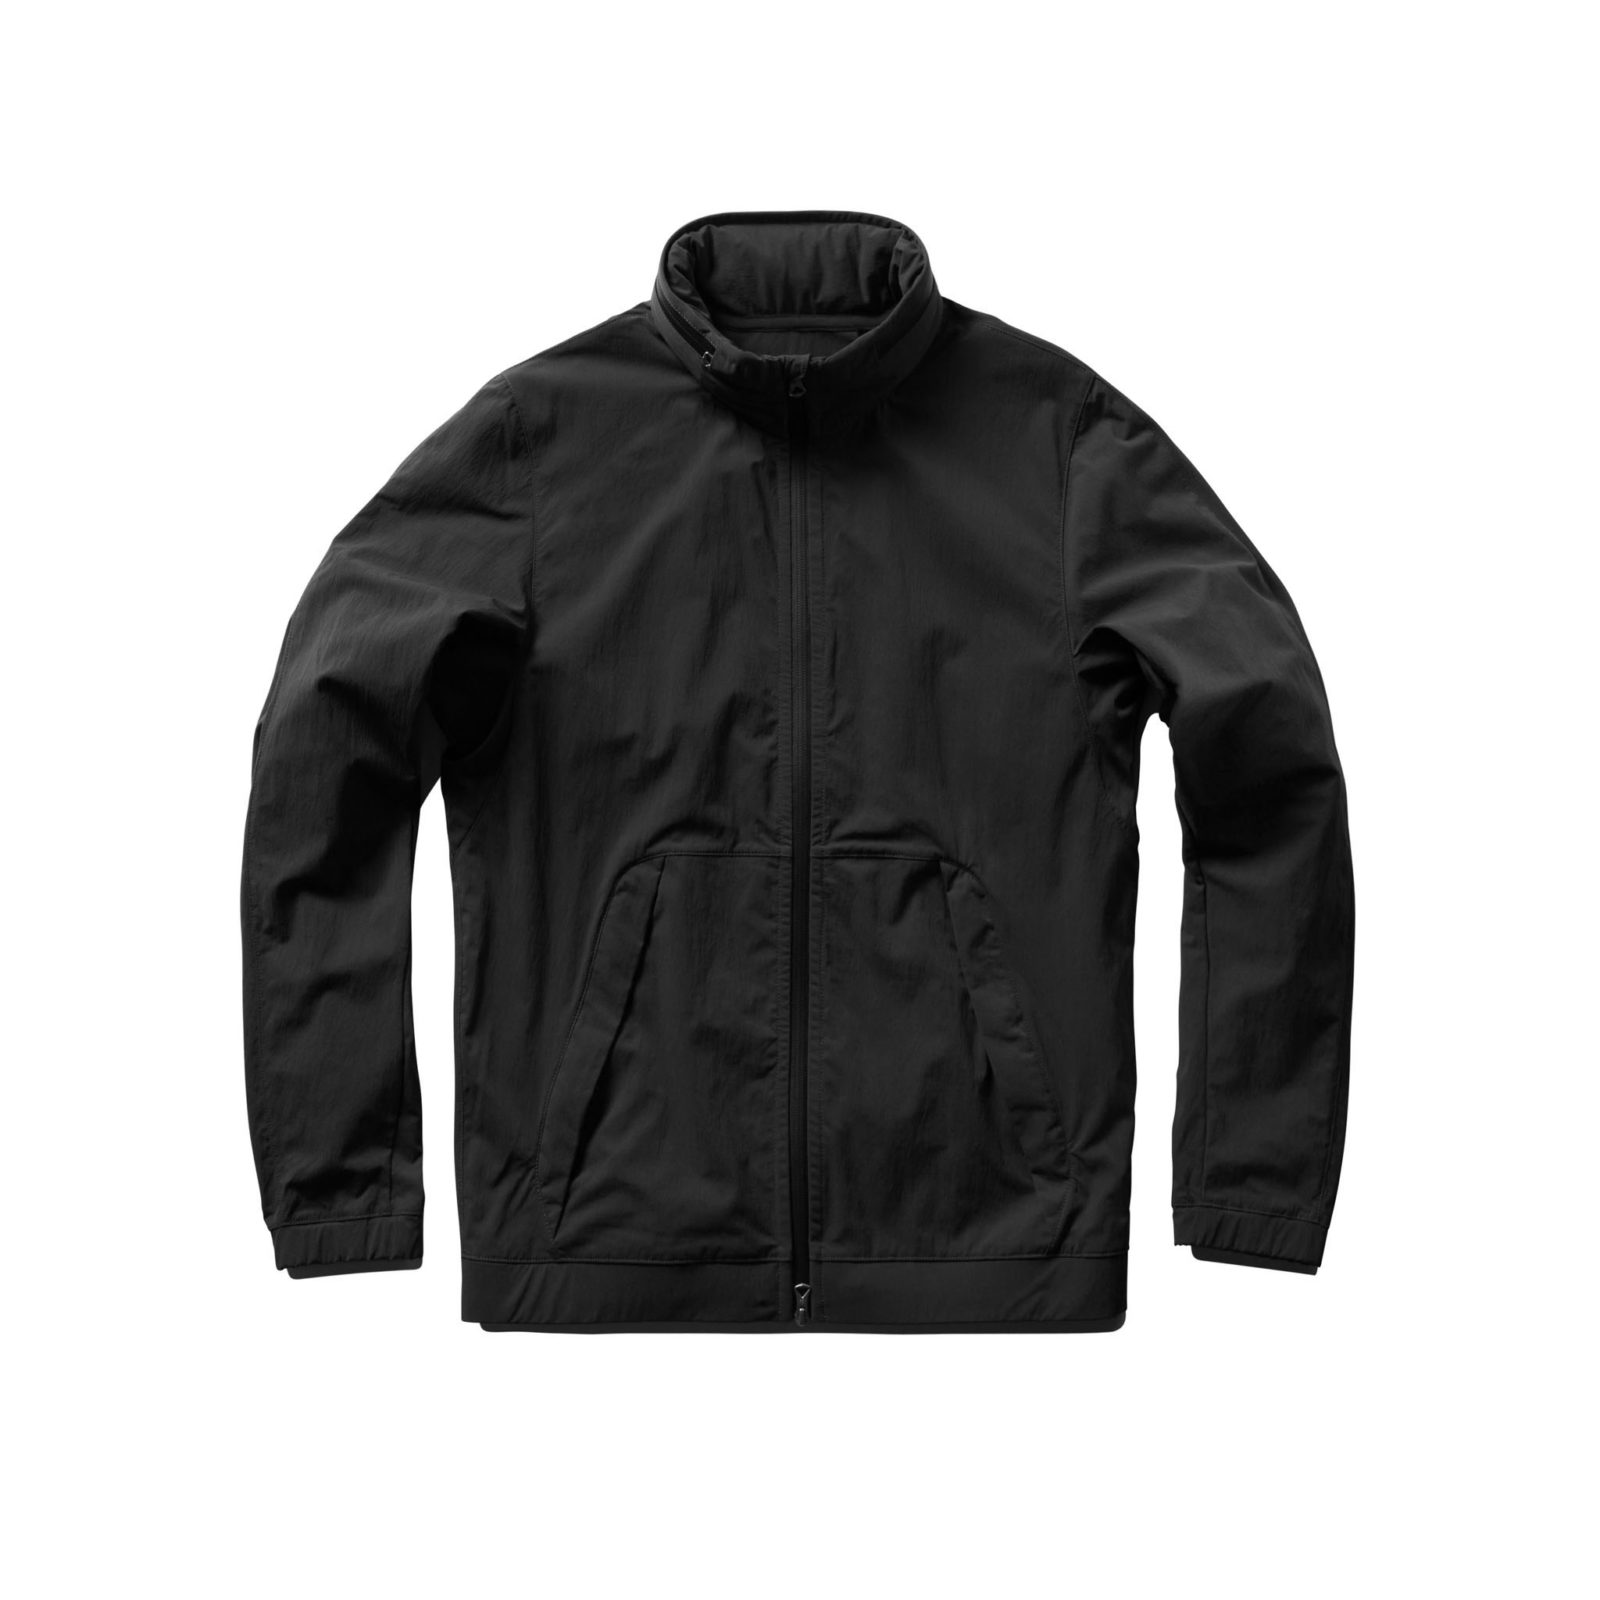 REIGNING CHAMP SEA TO SKY STOWAWAY JACKET